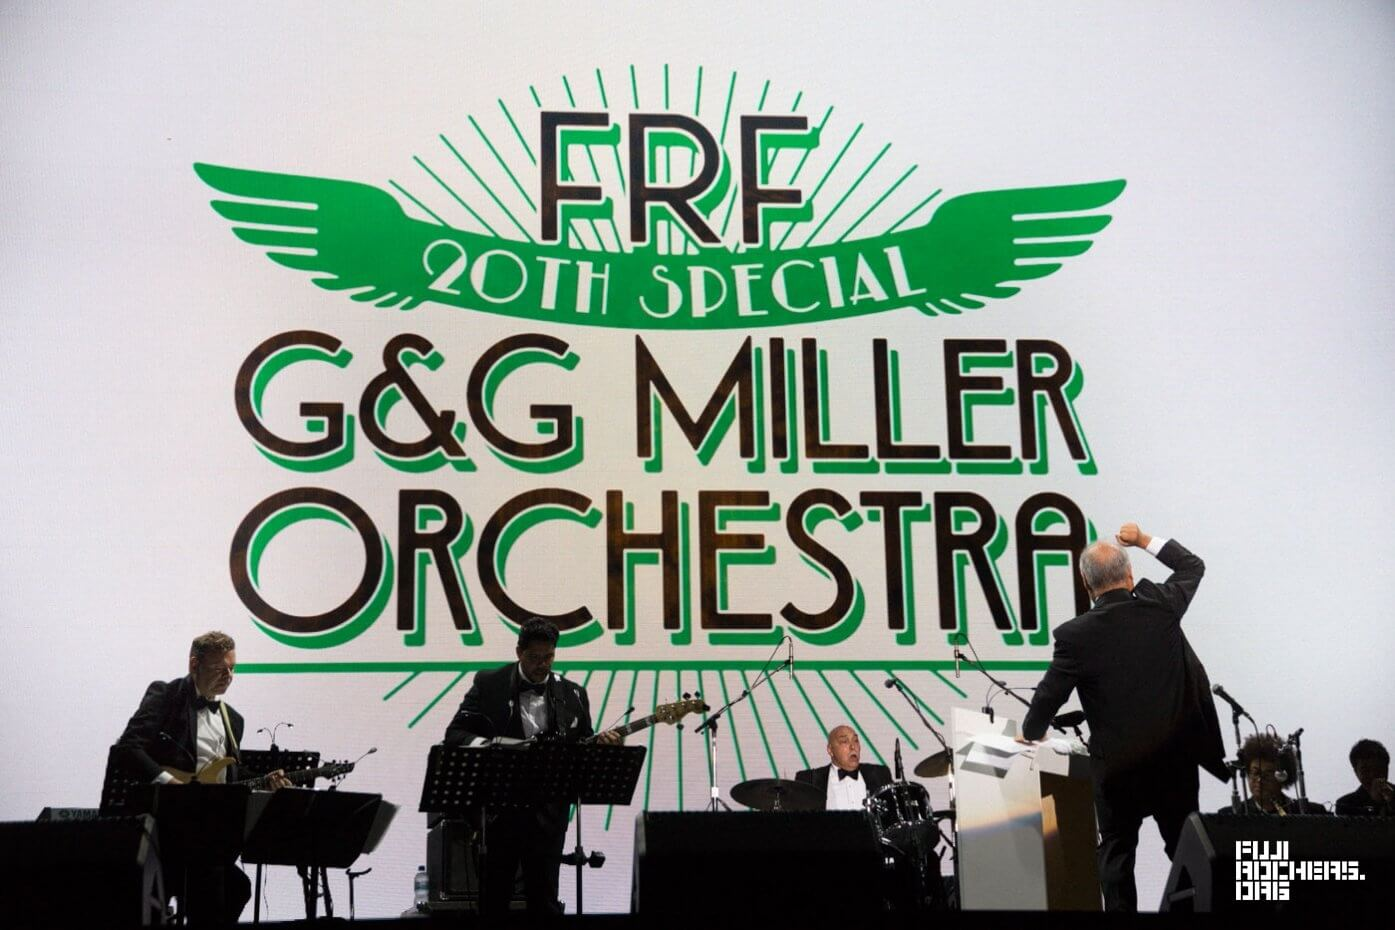 SPECIAL GUEST : G&G Miller Orchestra